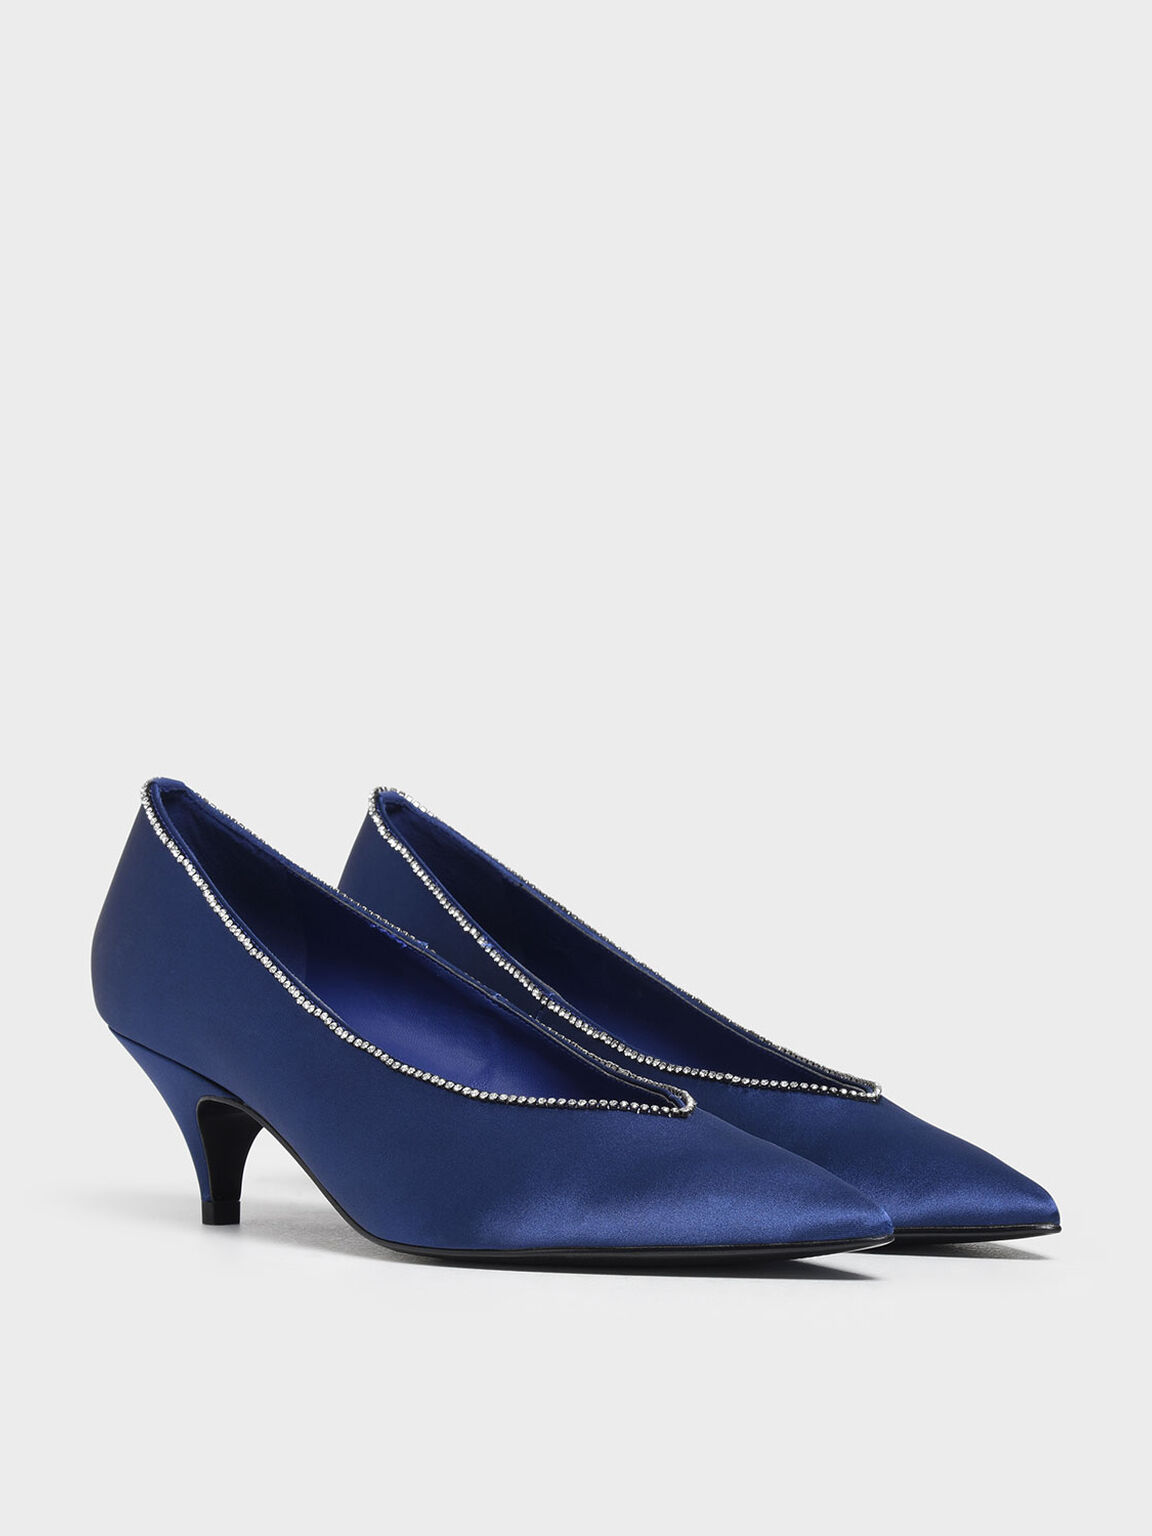 Gem Embellished Satin Kitten Heel Pumps, Blue, hi-res